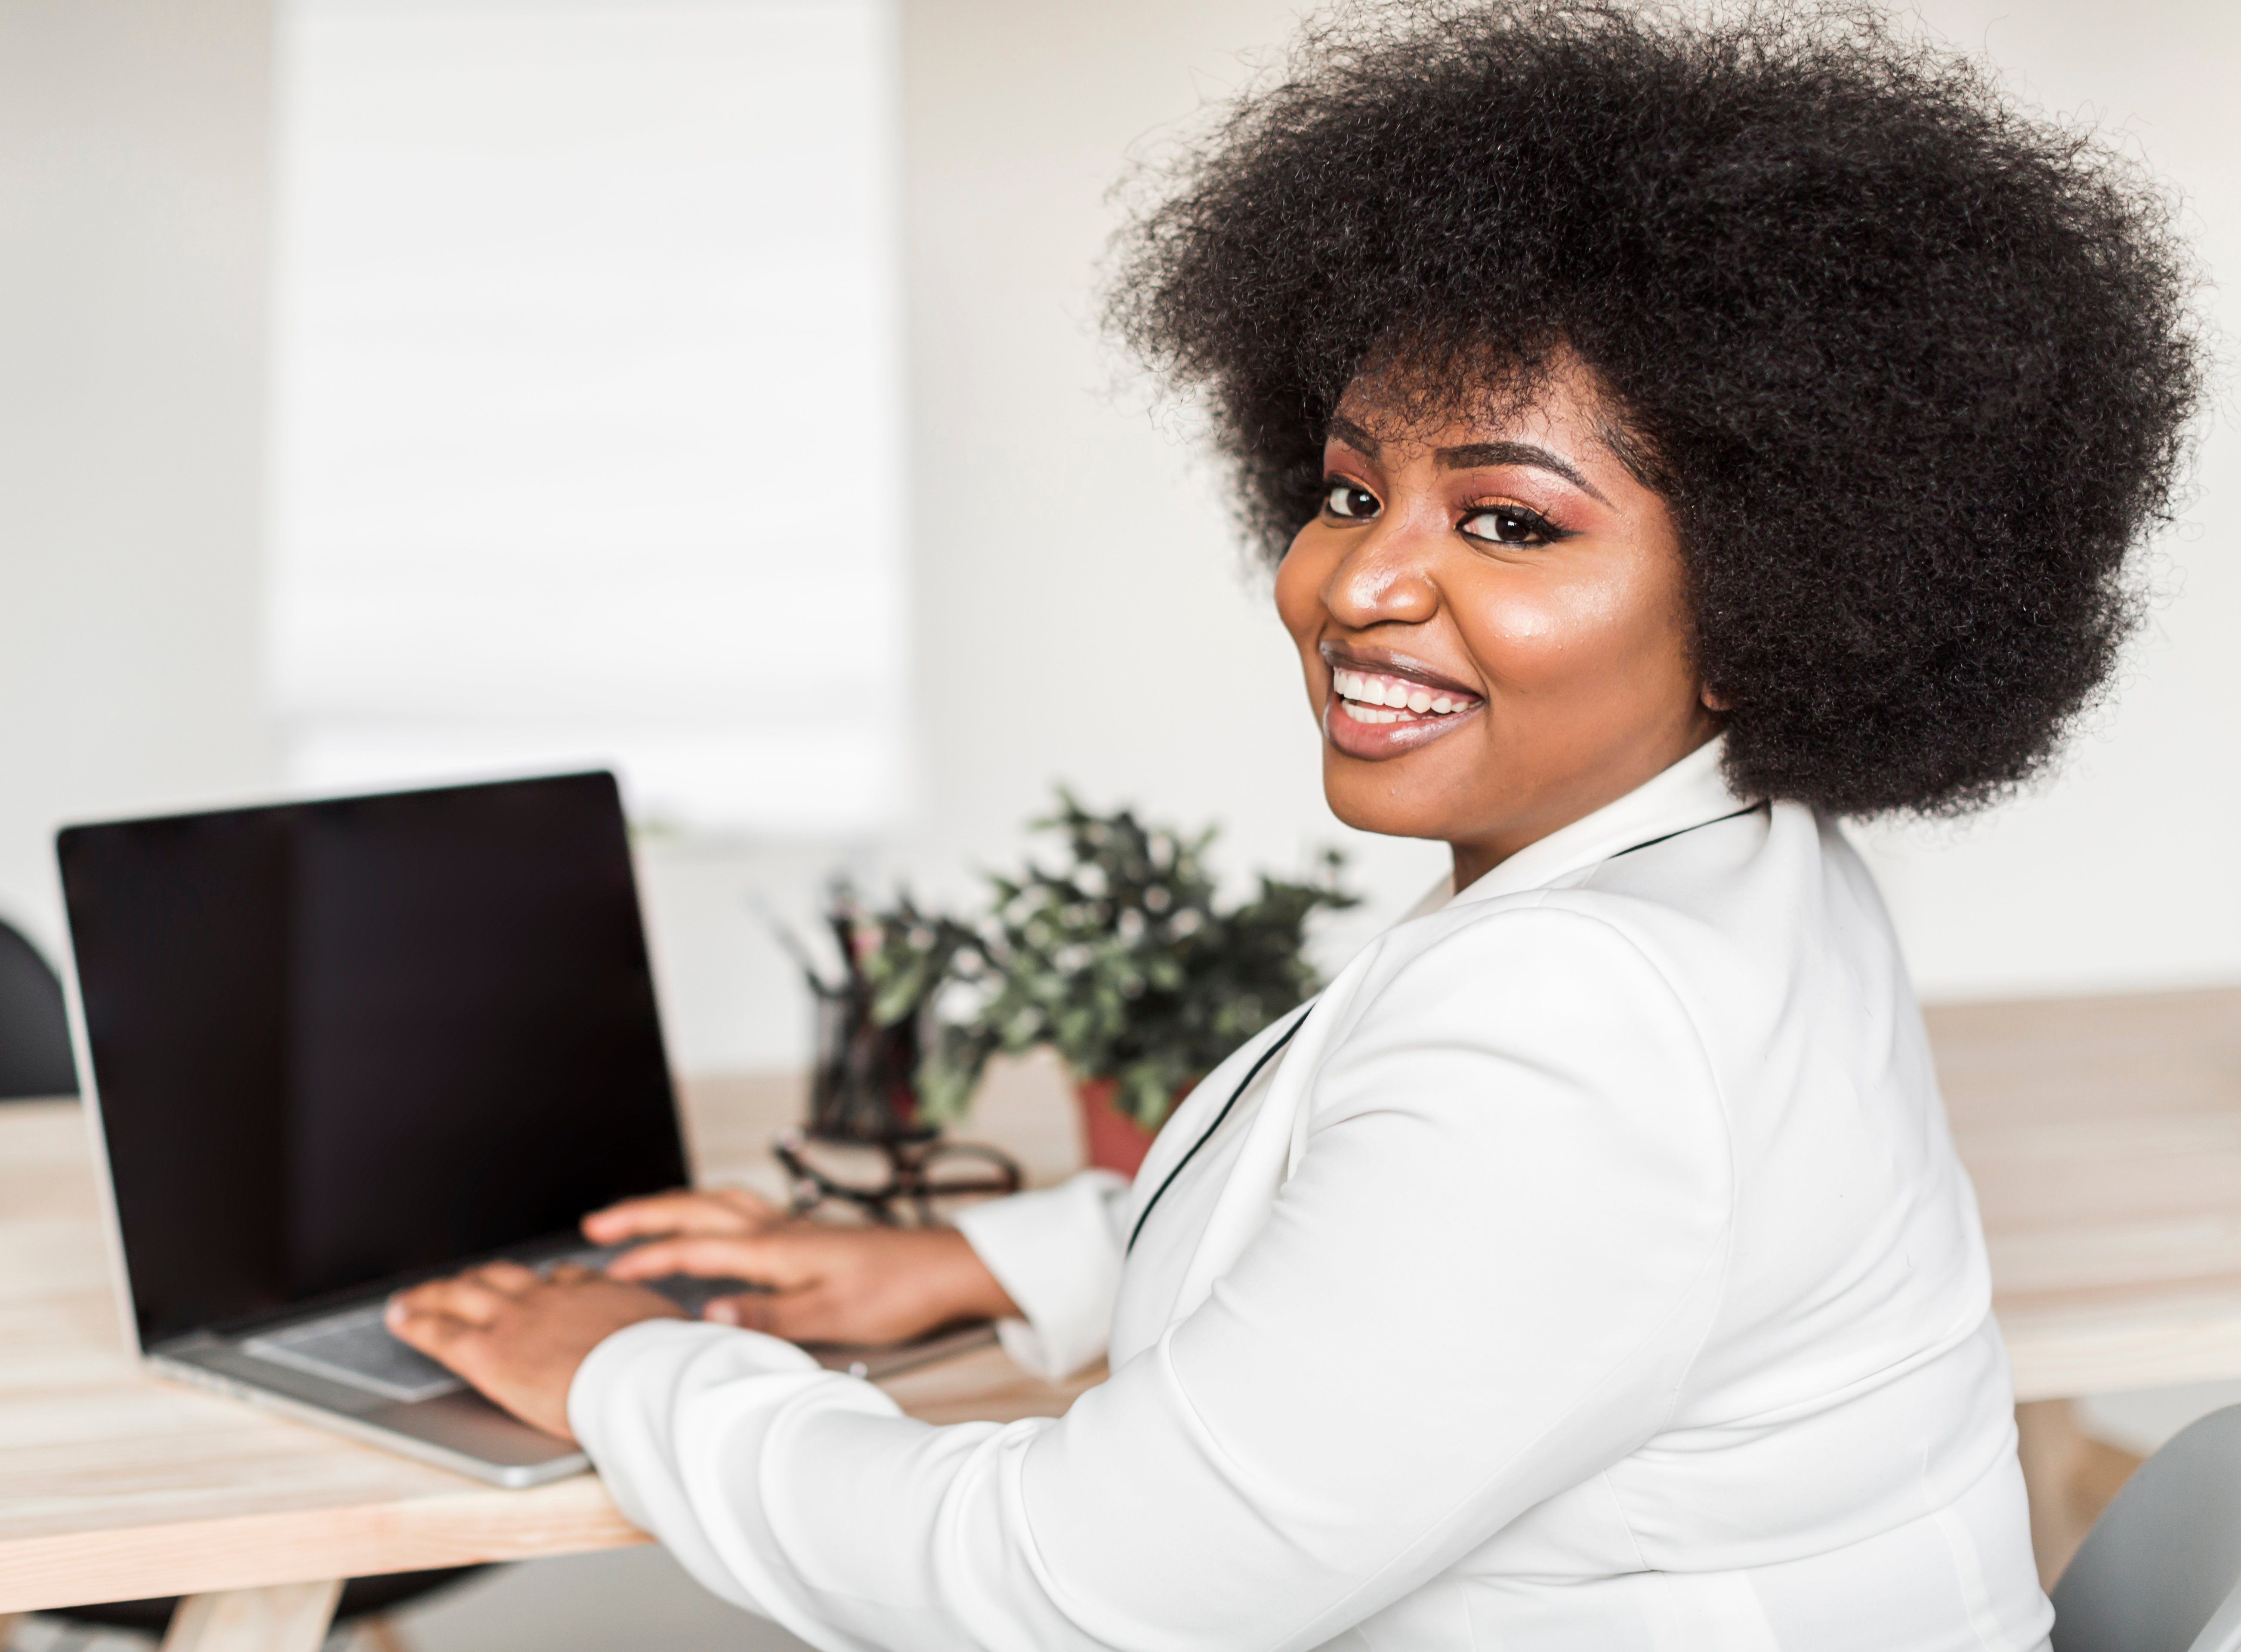 front-view-woman-working-laptop